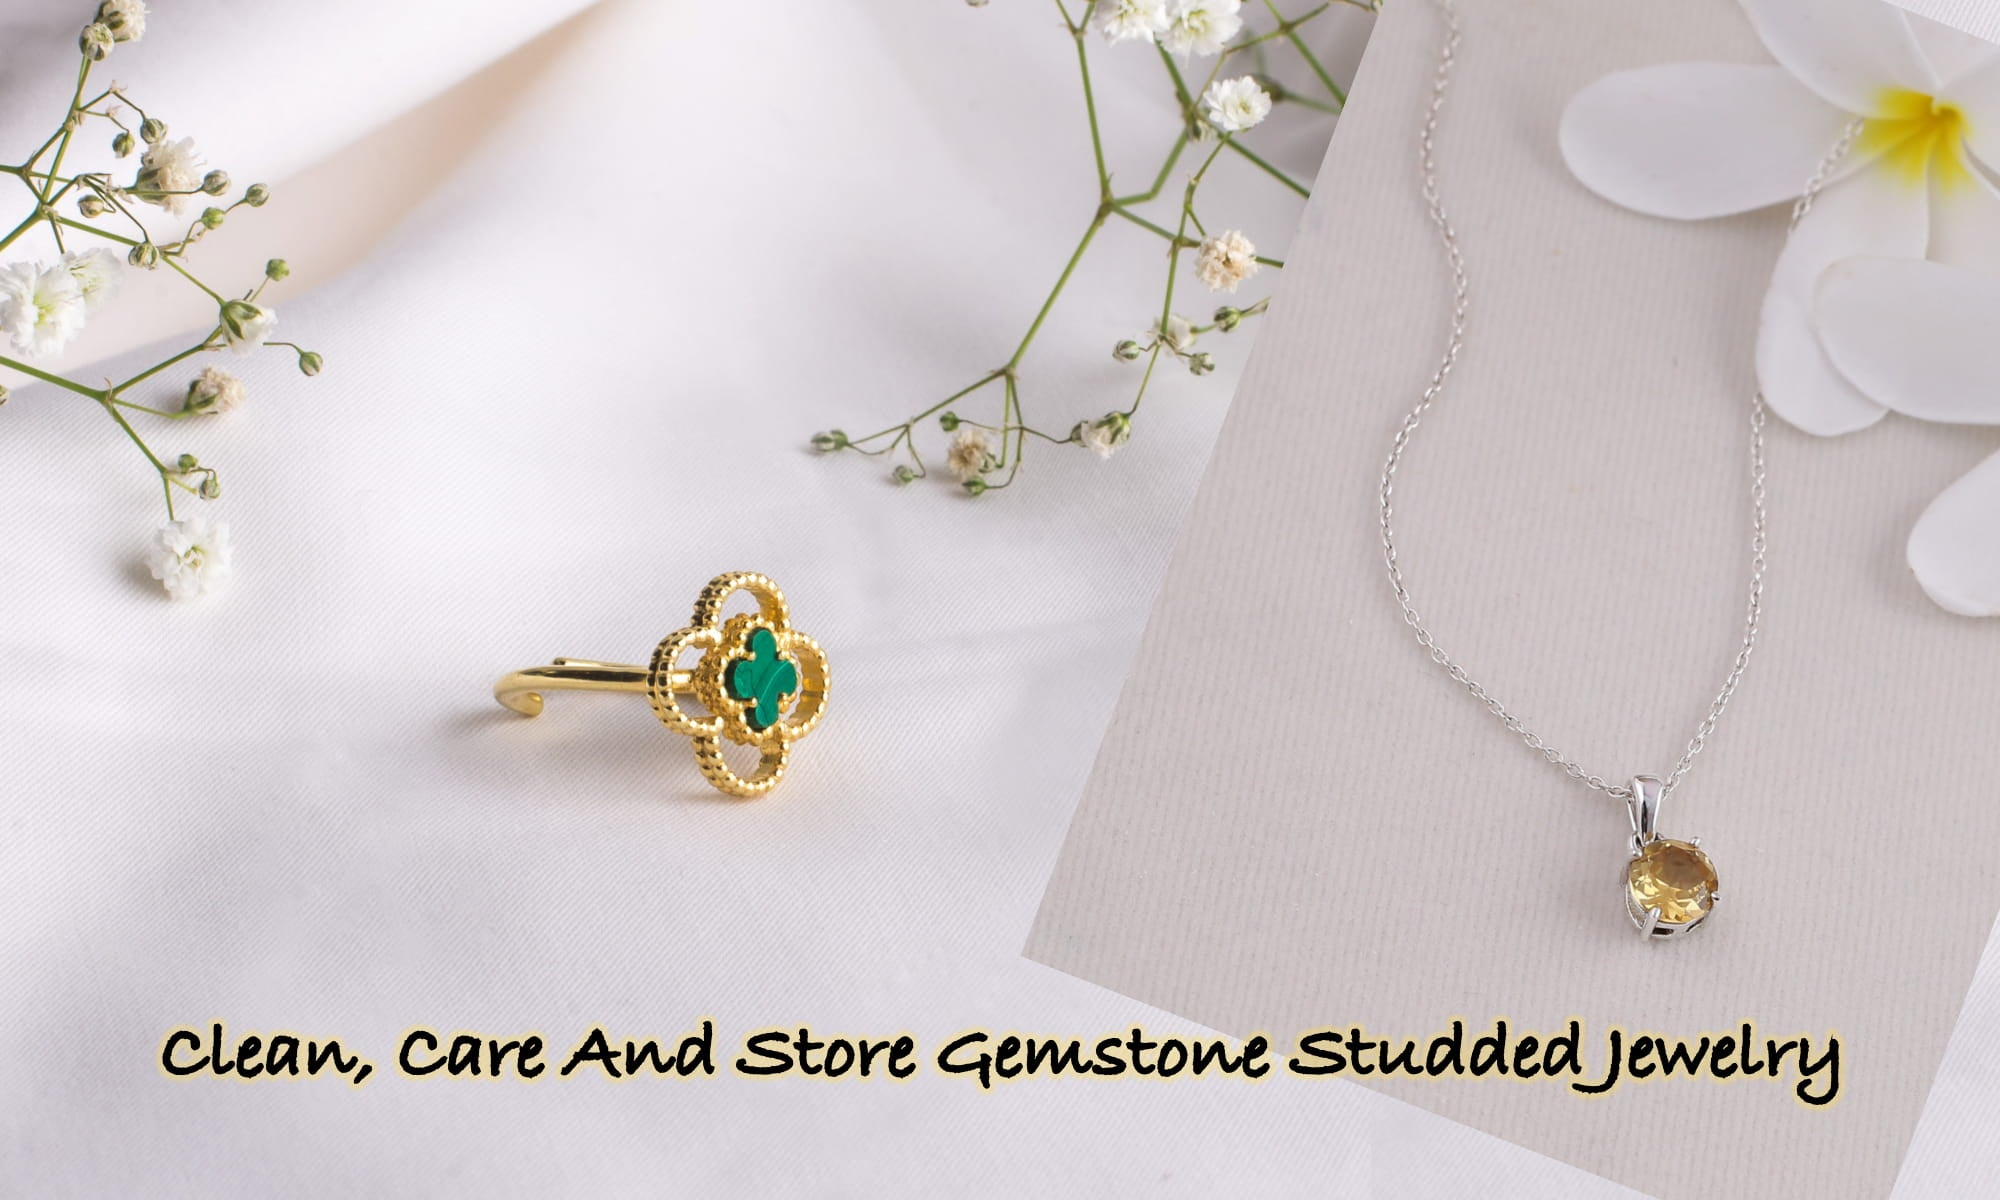 Clean, Care And Store Gemstone Studded Jewelry